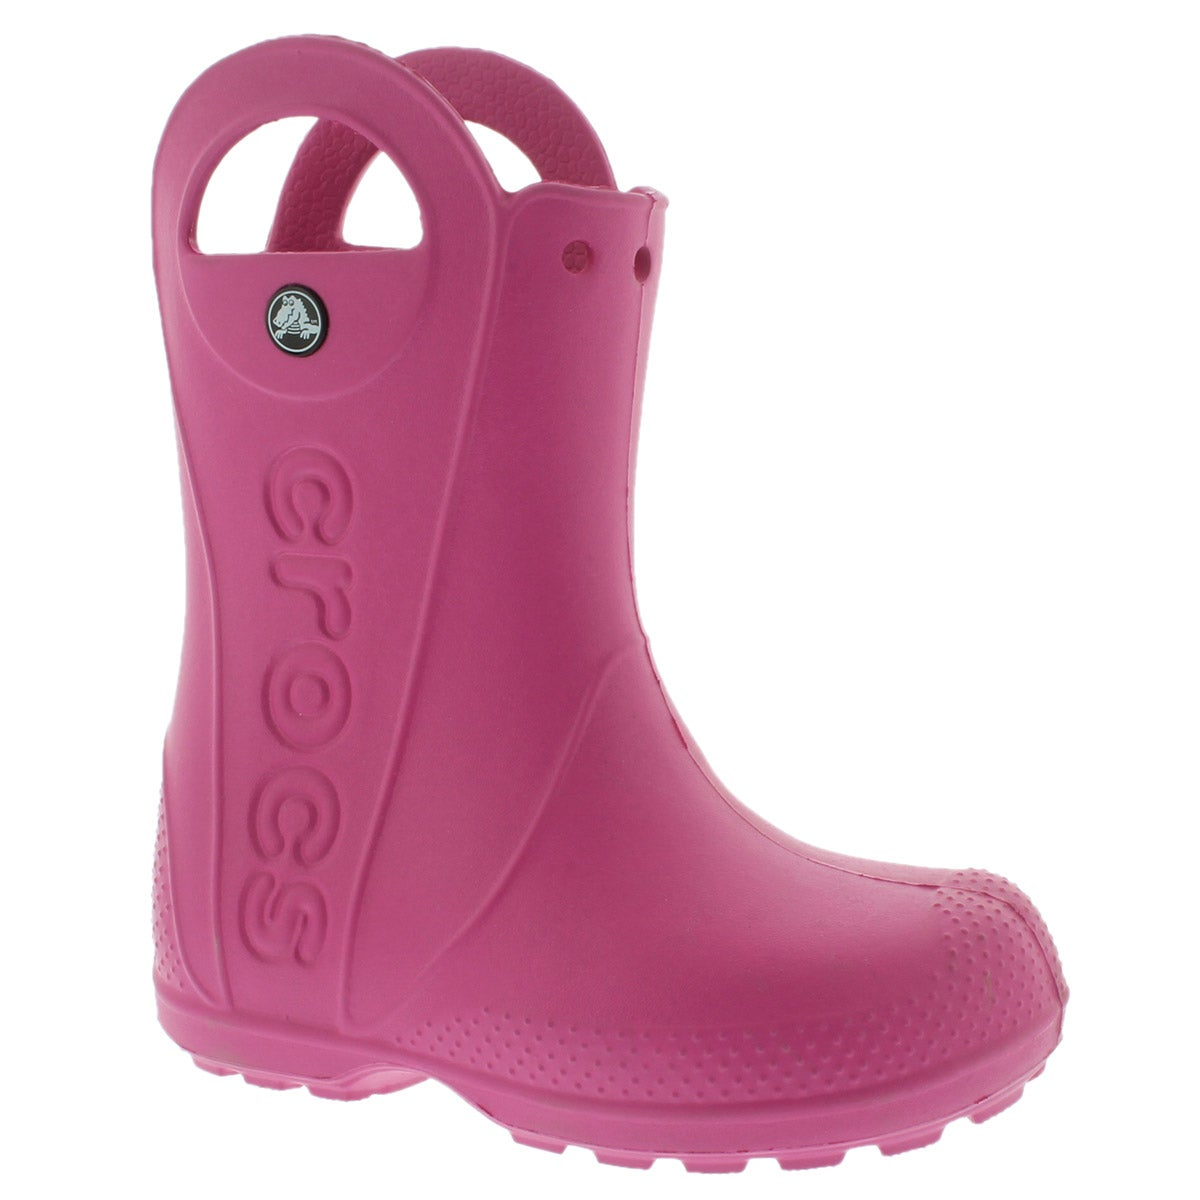 Grls Handle it fuchsia wtprf rain boot